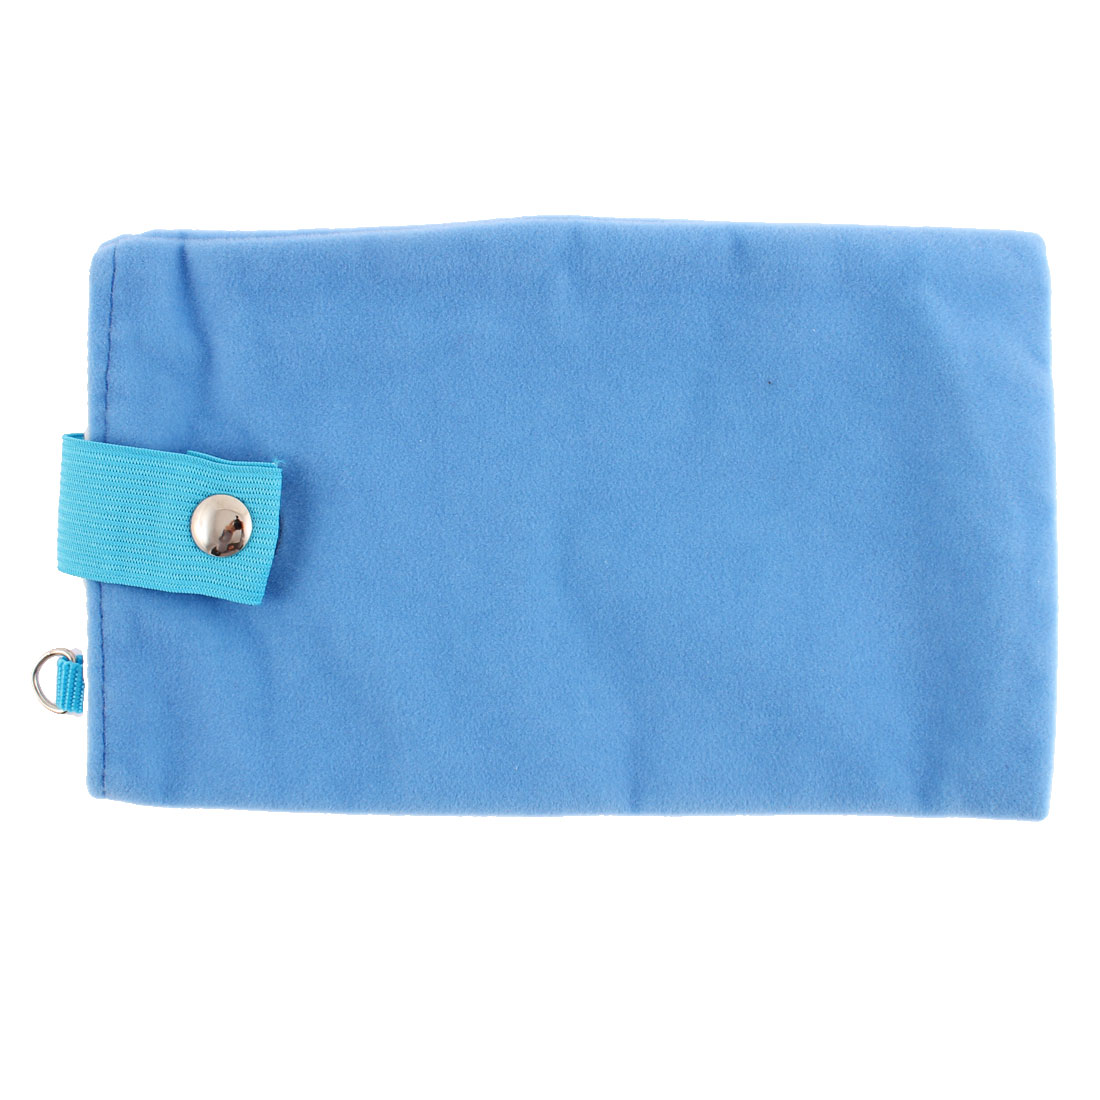 Dual Layer Magnetic Clasp Button Cell Phone Pouch Sleeve Bag Light Blue 18x11cm